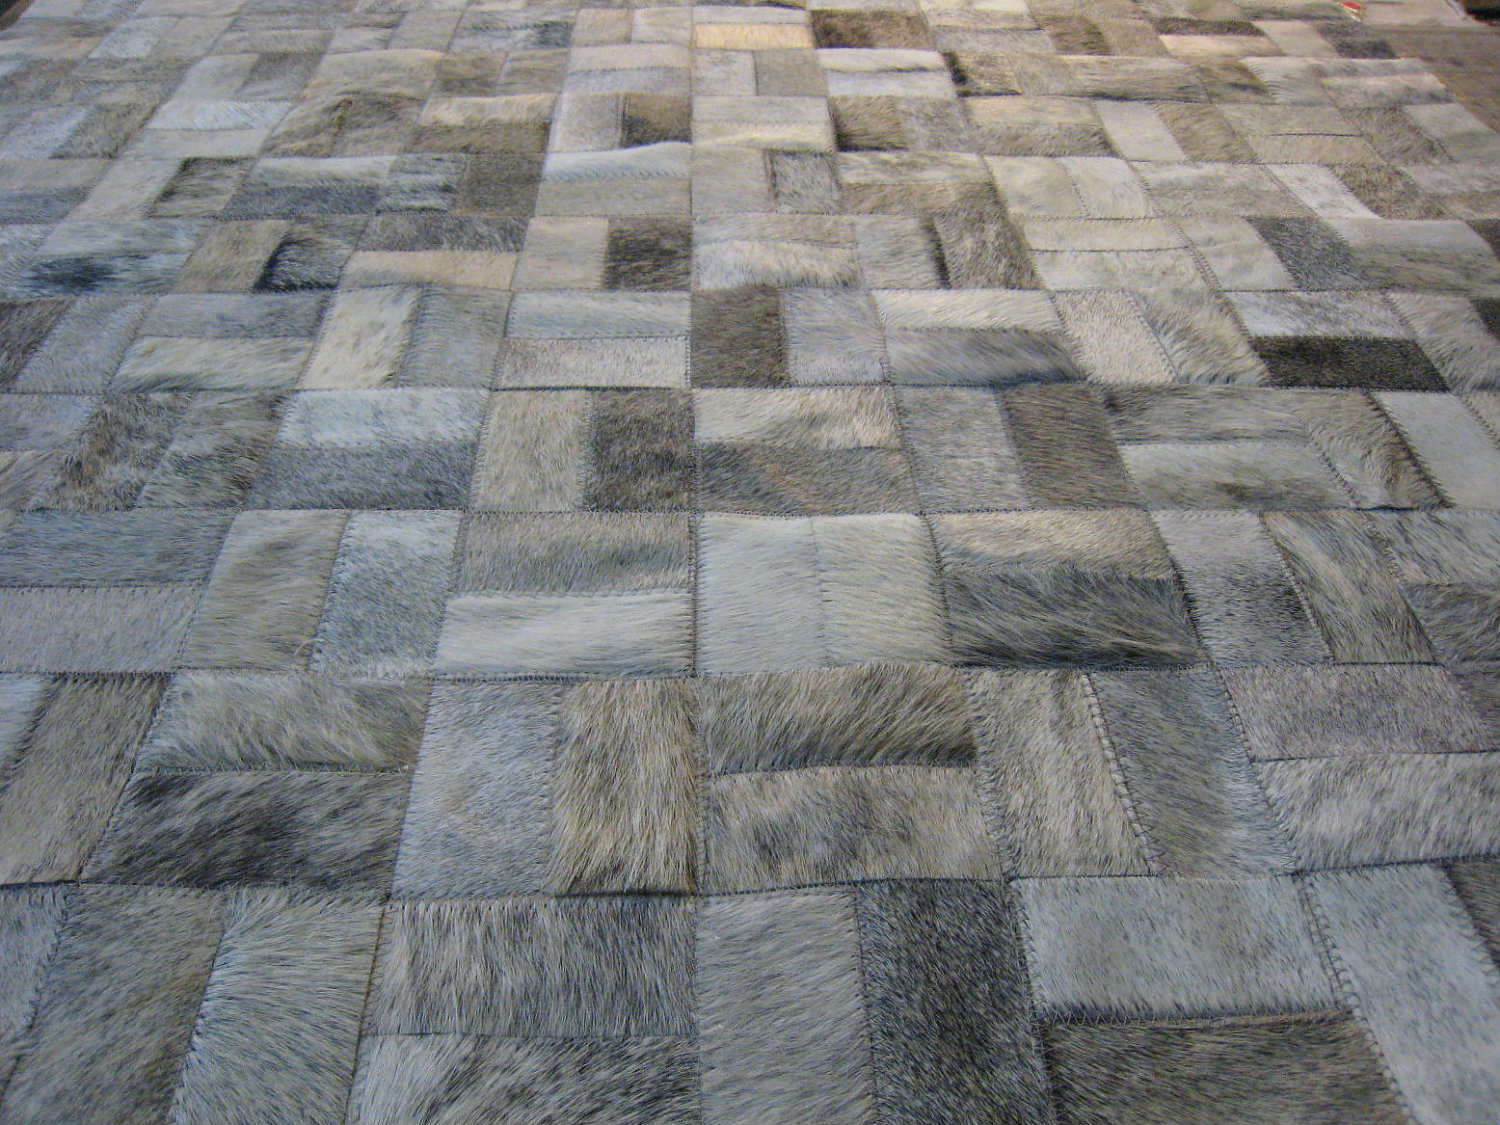 chic cowhide patchwork rug in grey with puzzle motif for floor decor ideas